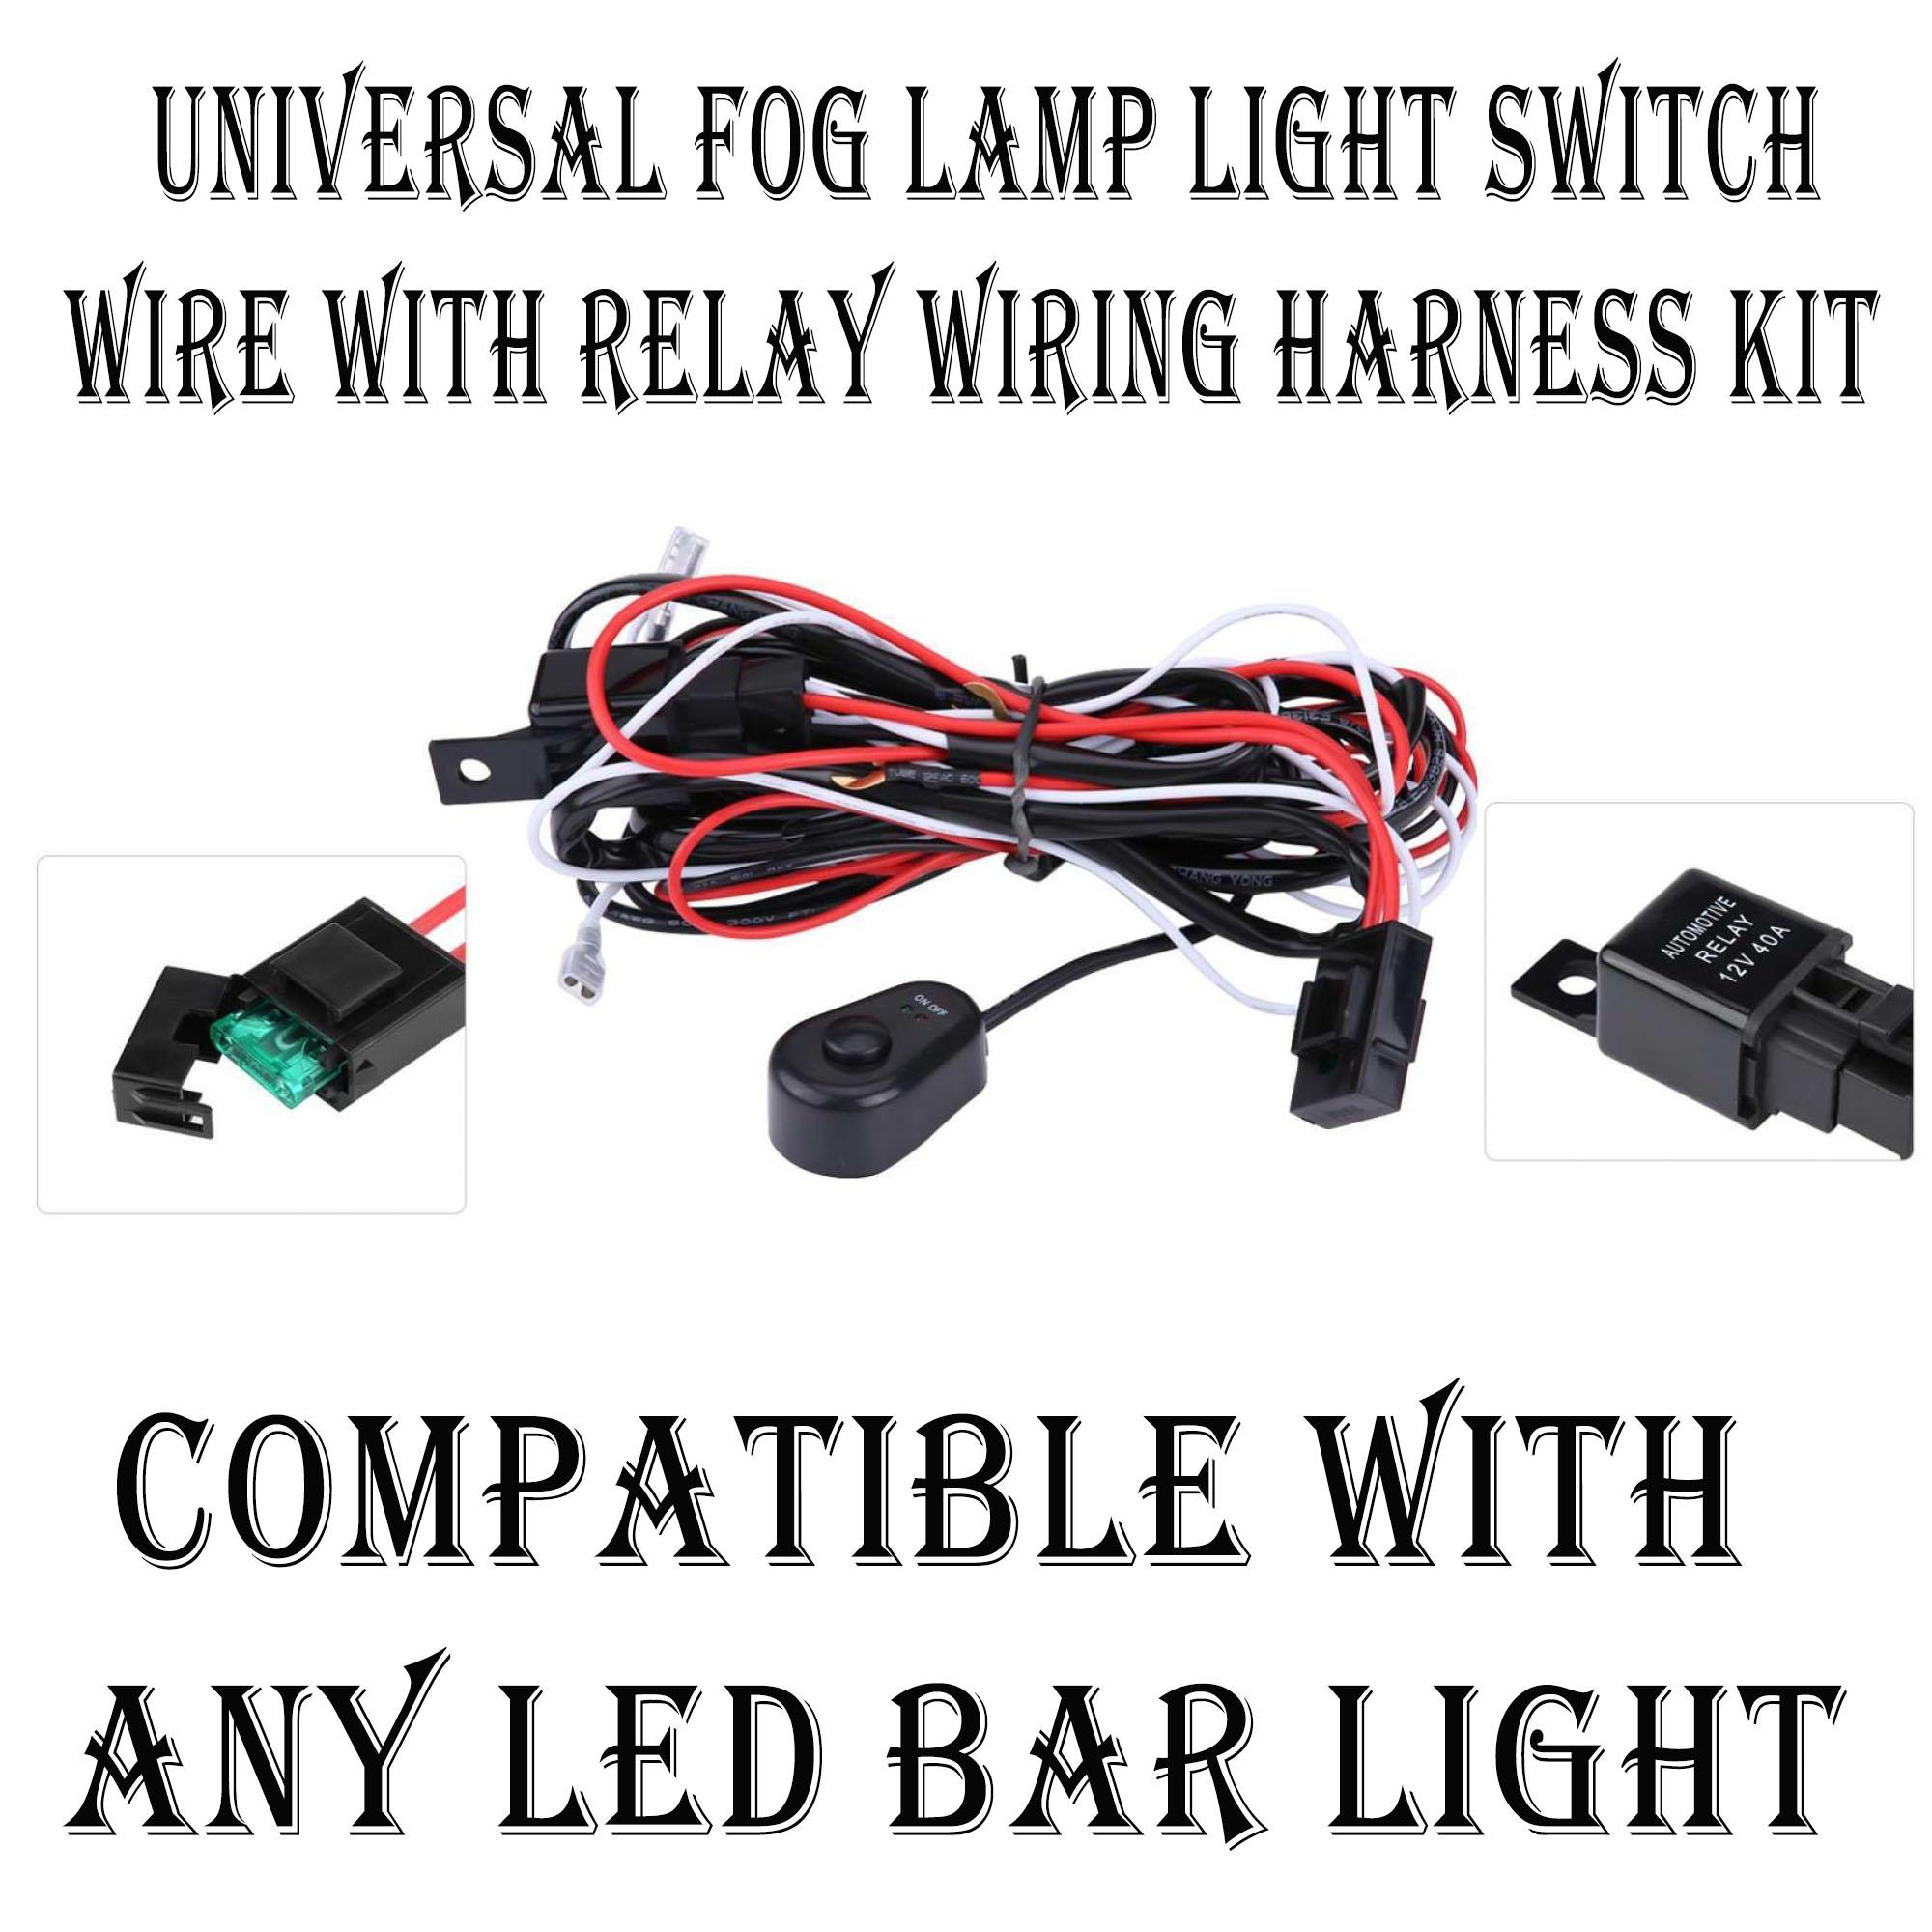 Car Motorcycle Universal Fog Lamp Light Switch Wire With Relay Wiring Harness Kit For Led Lights 12v Lazada Ph